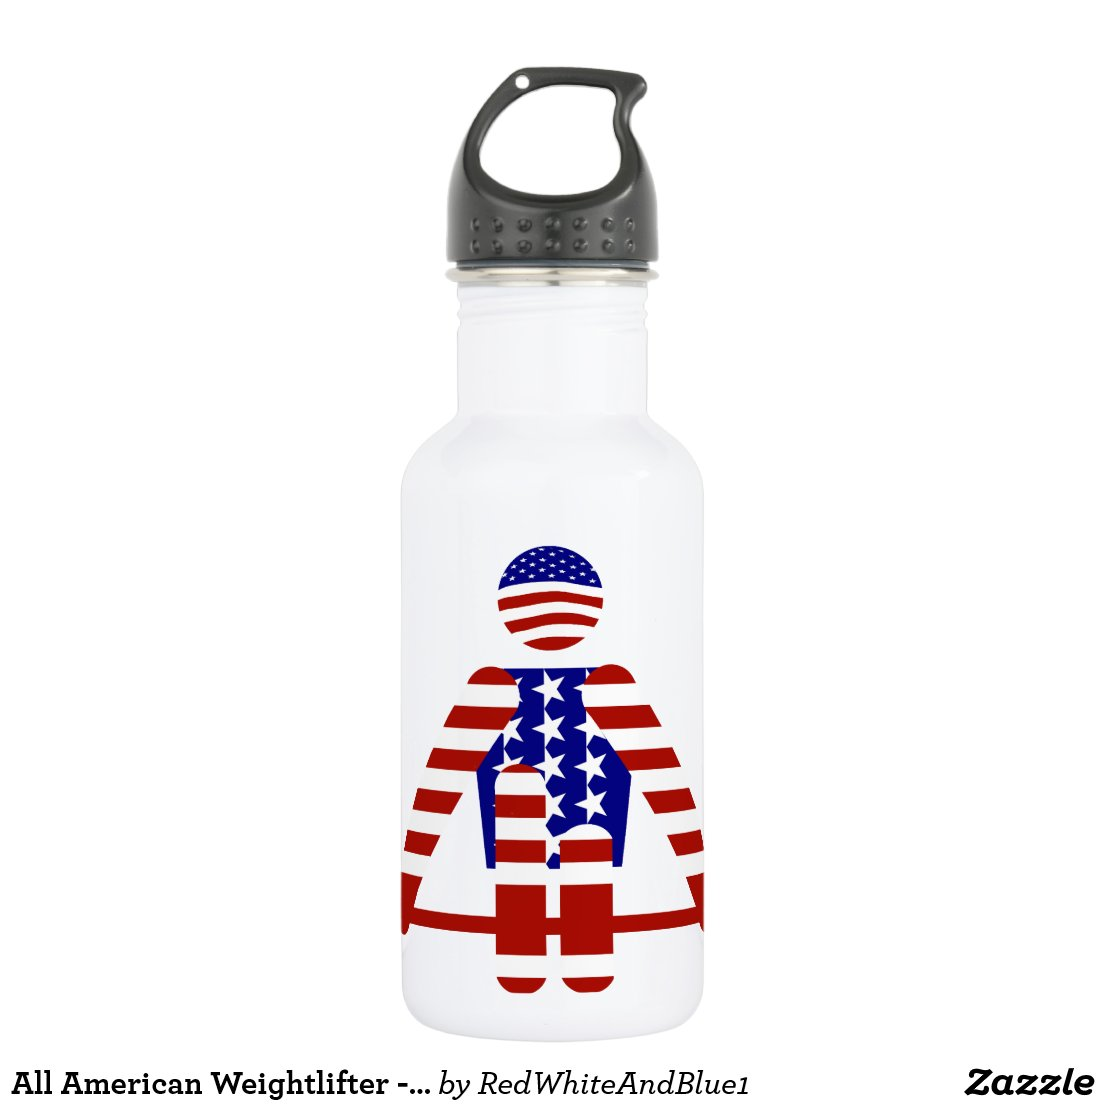 All American Weightlifter - Powerlifting Stainless Steel Water Bottle